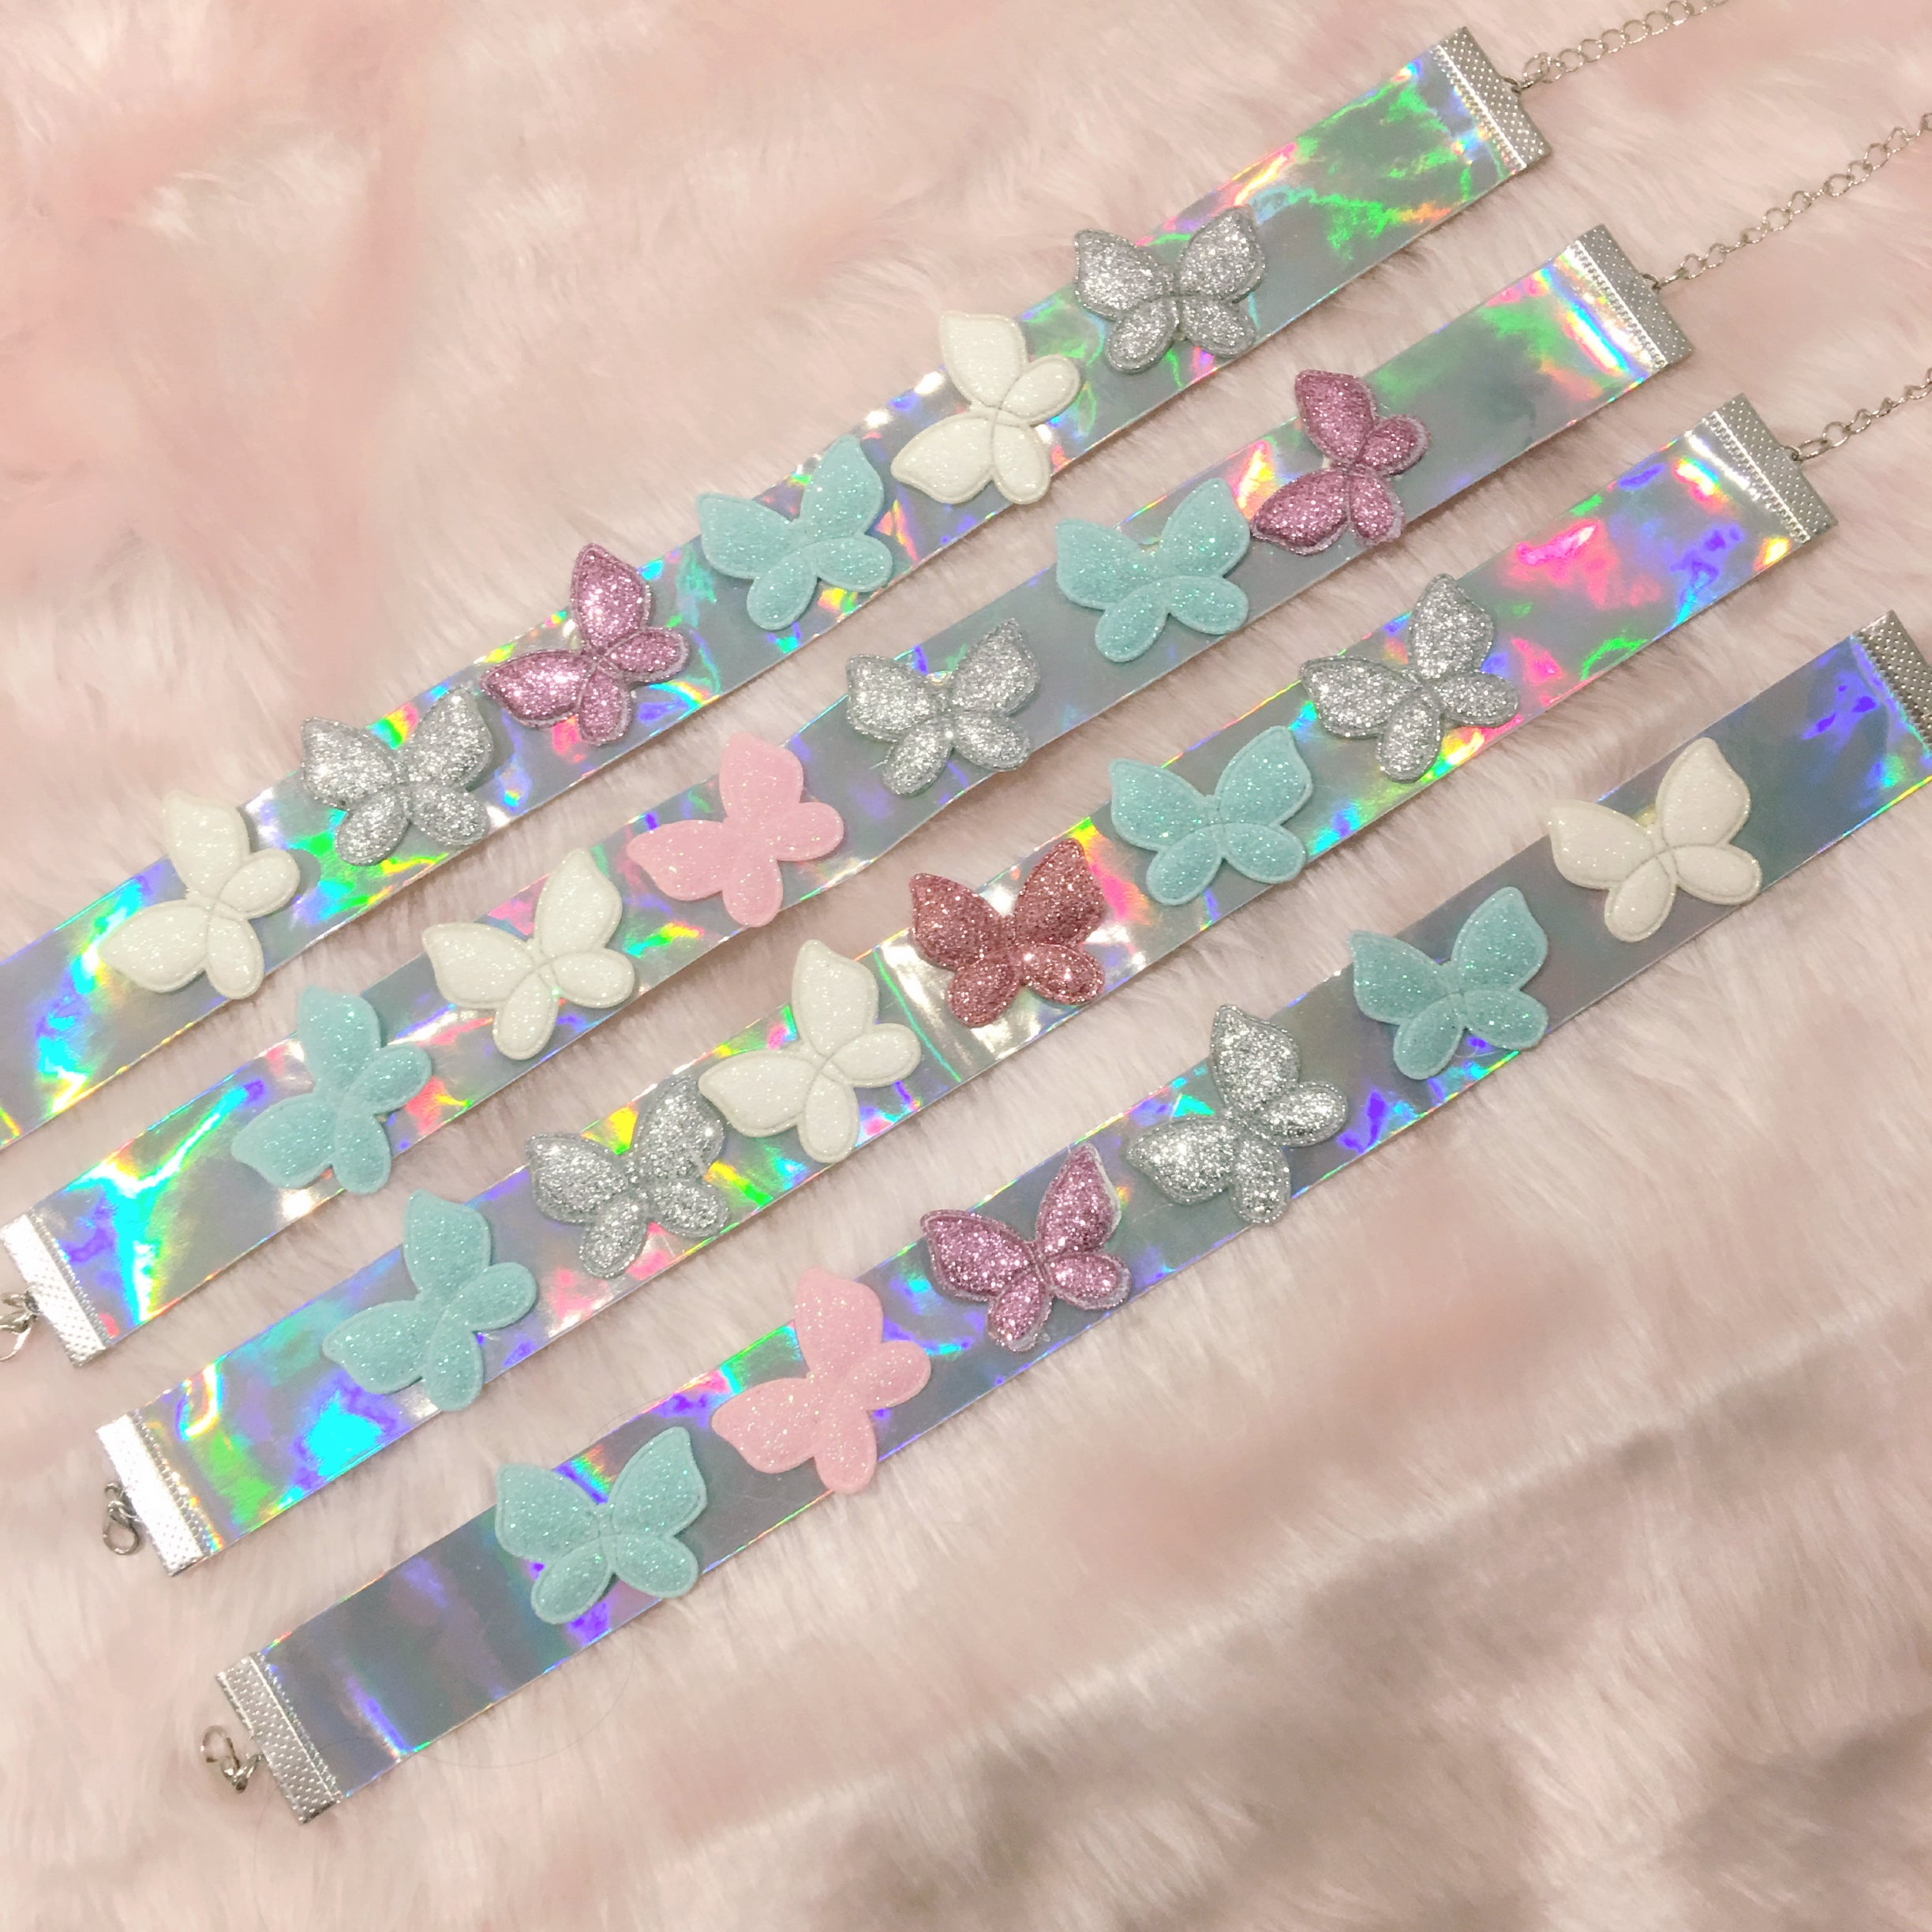 iridescent choker collar holographic necklace with butterflies handmade fashion kawaii pastel aesthetic at BABY VOODOO